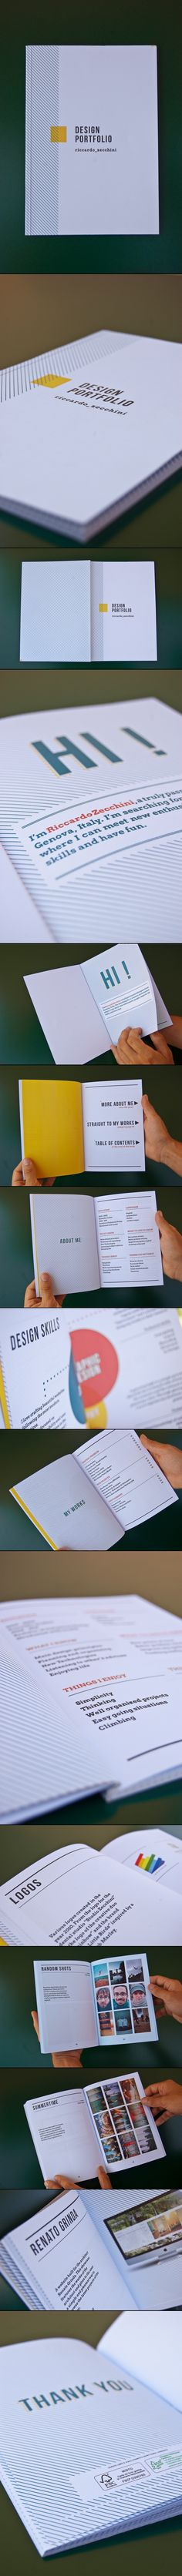 Great idea for design portfolio!